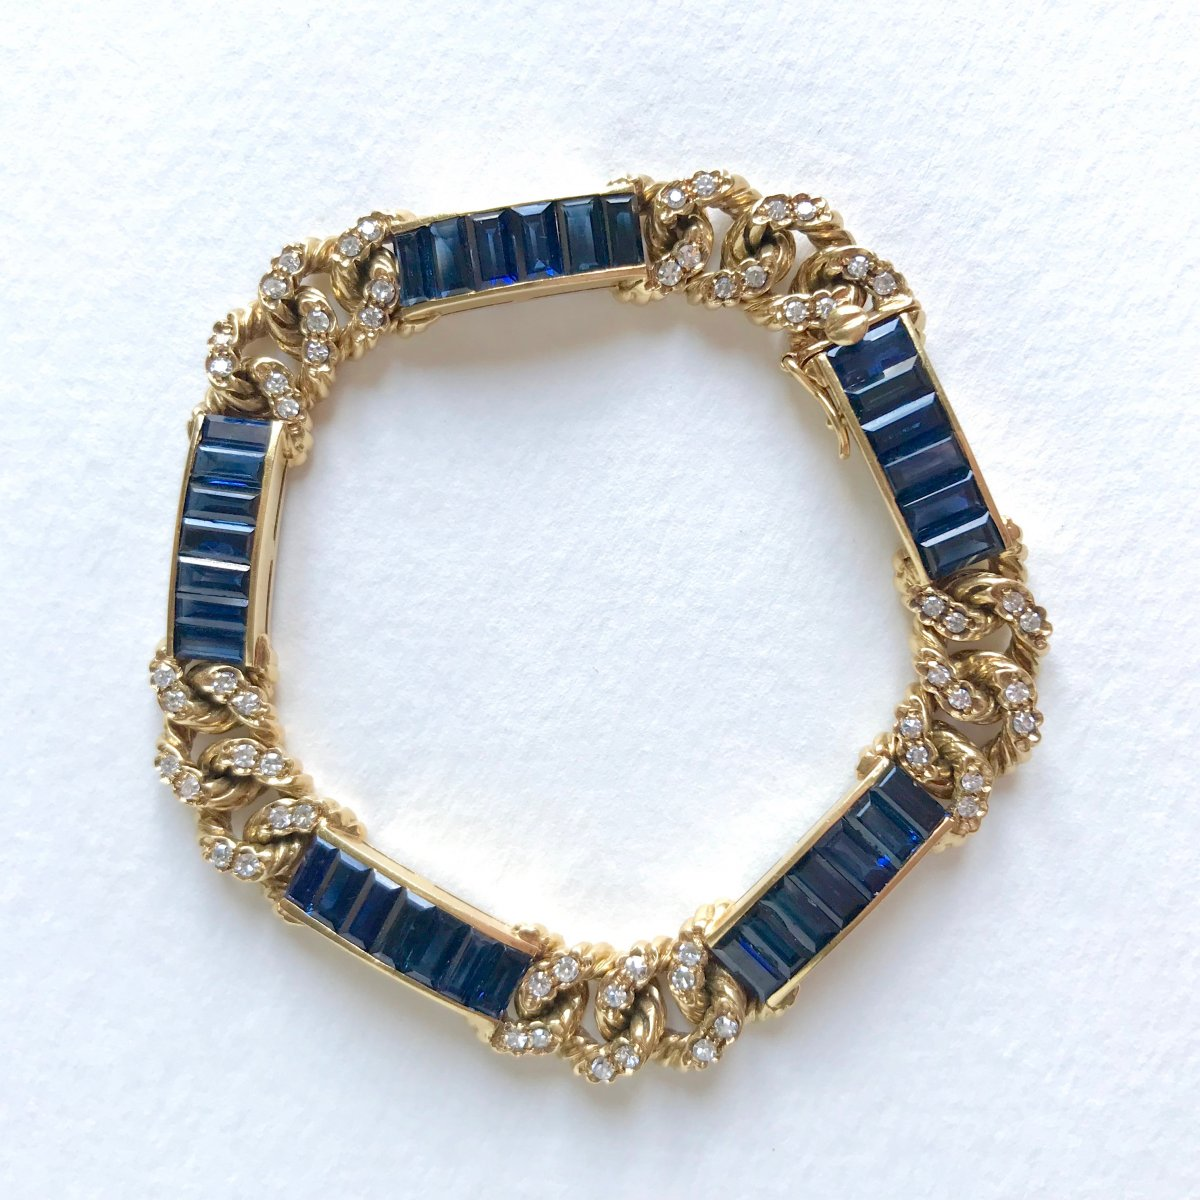 Fred Paris Bracelet In 18 Kt Yellow Gold, Sapphires And Diamonds